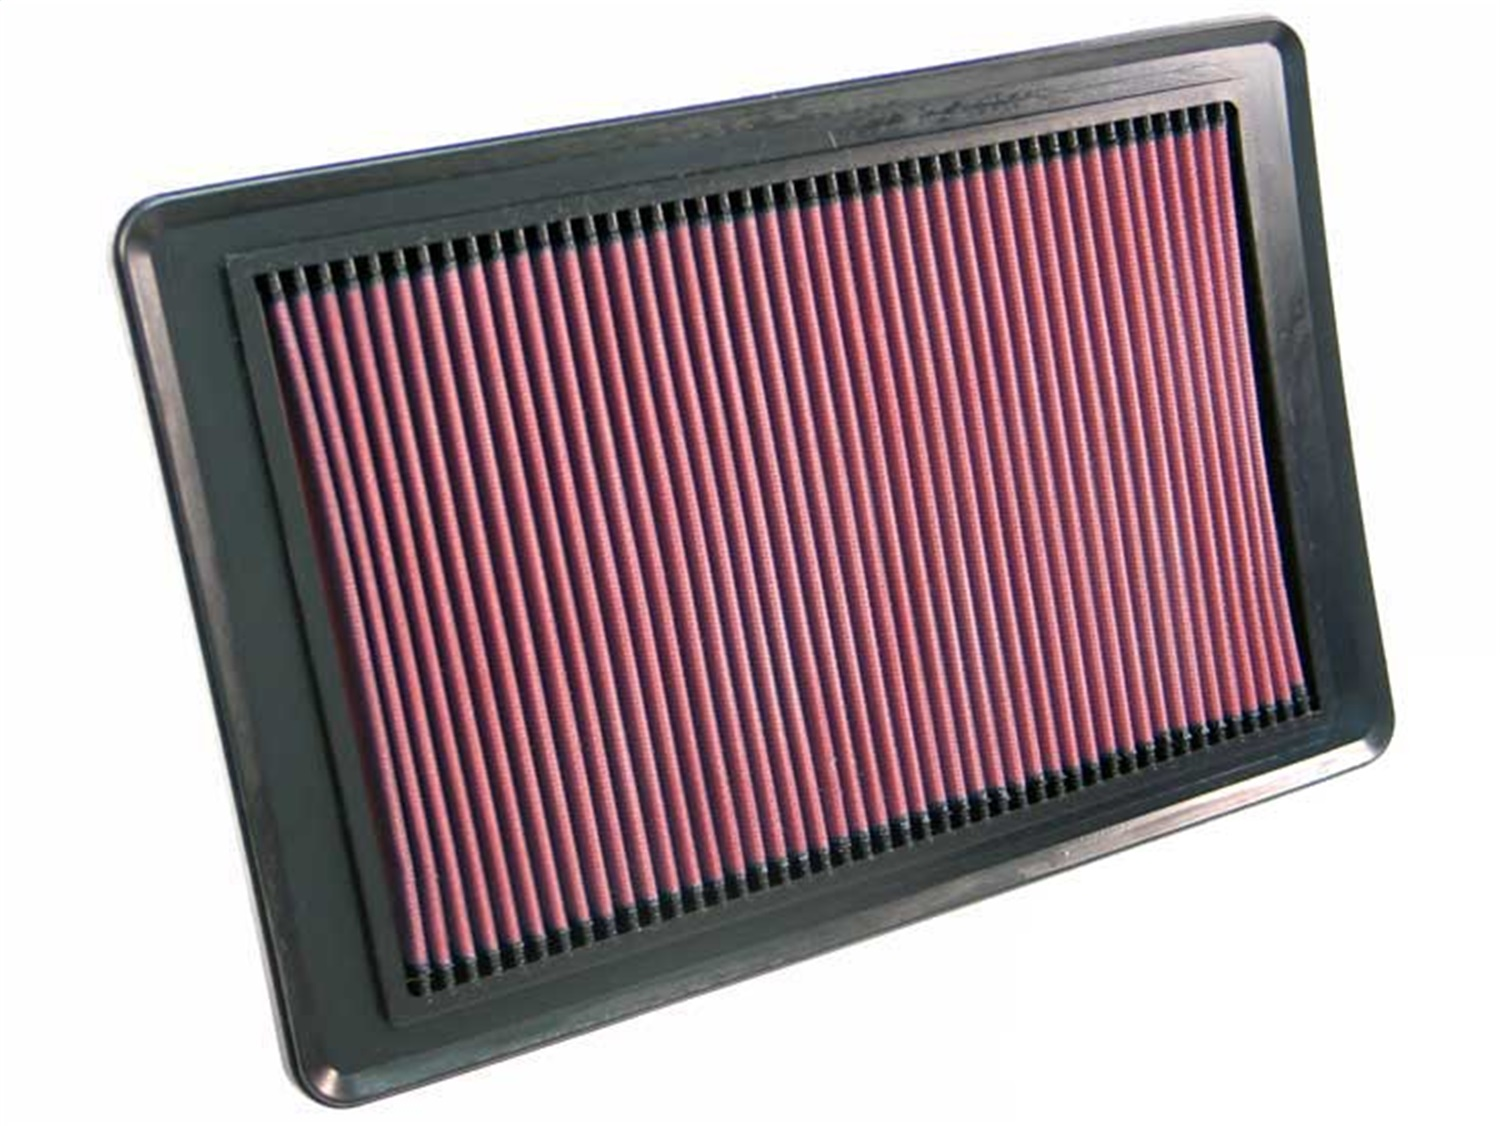 K&N Filters 33-2349 Air Filter Fits 06-10 Sky Solstice 33-2349